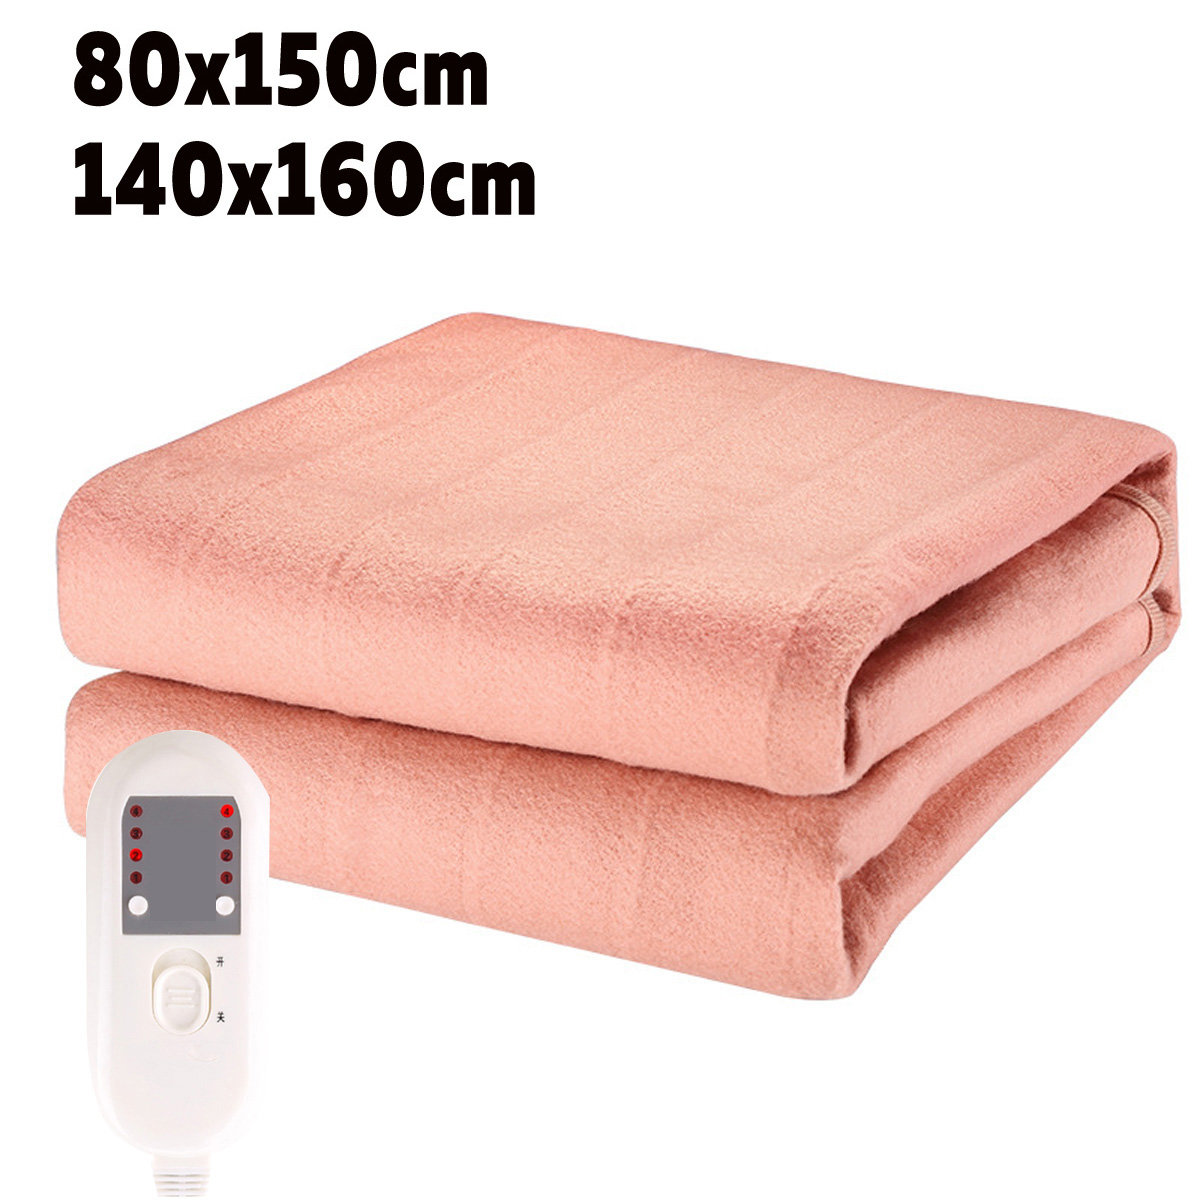 Non-woven Fabric Electrical Blanket Electric Mattress Electric Blanket Thicker Heated Carpet Electric Mat Body Warmer Heater